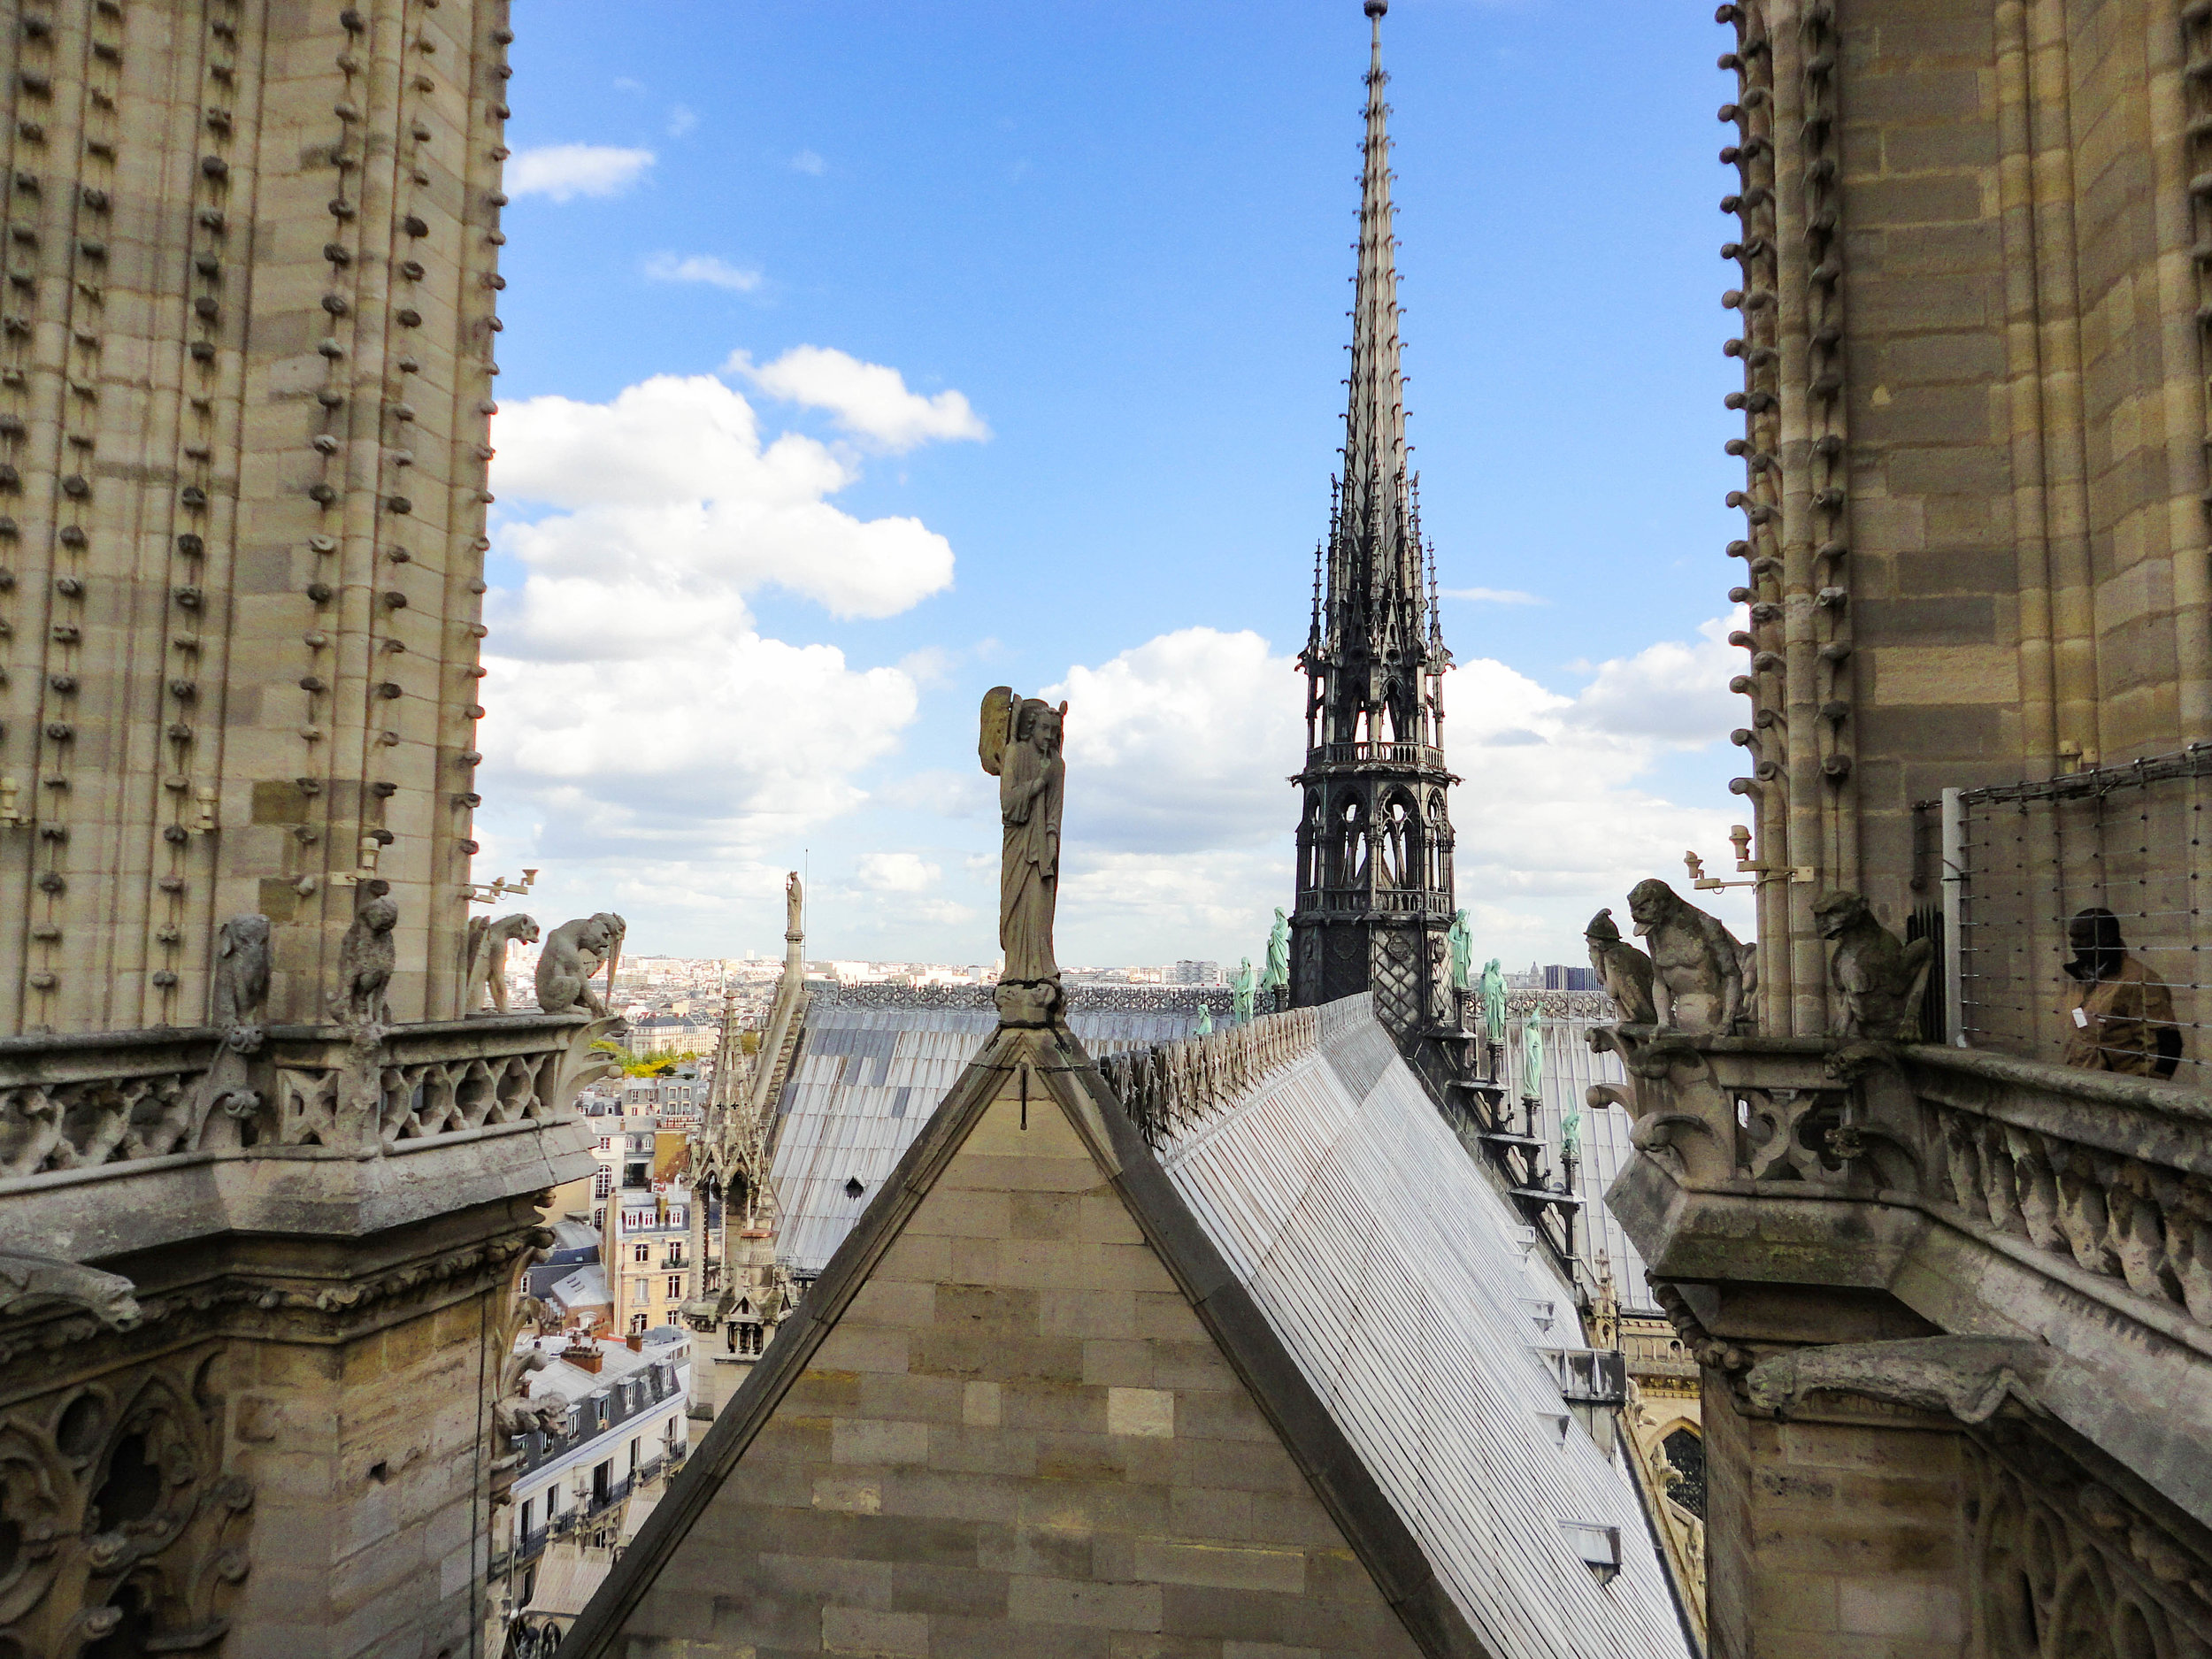 Notre Dame tower roof before the fire